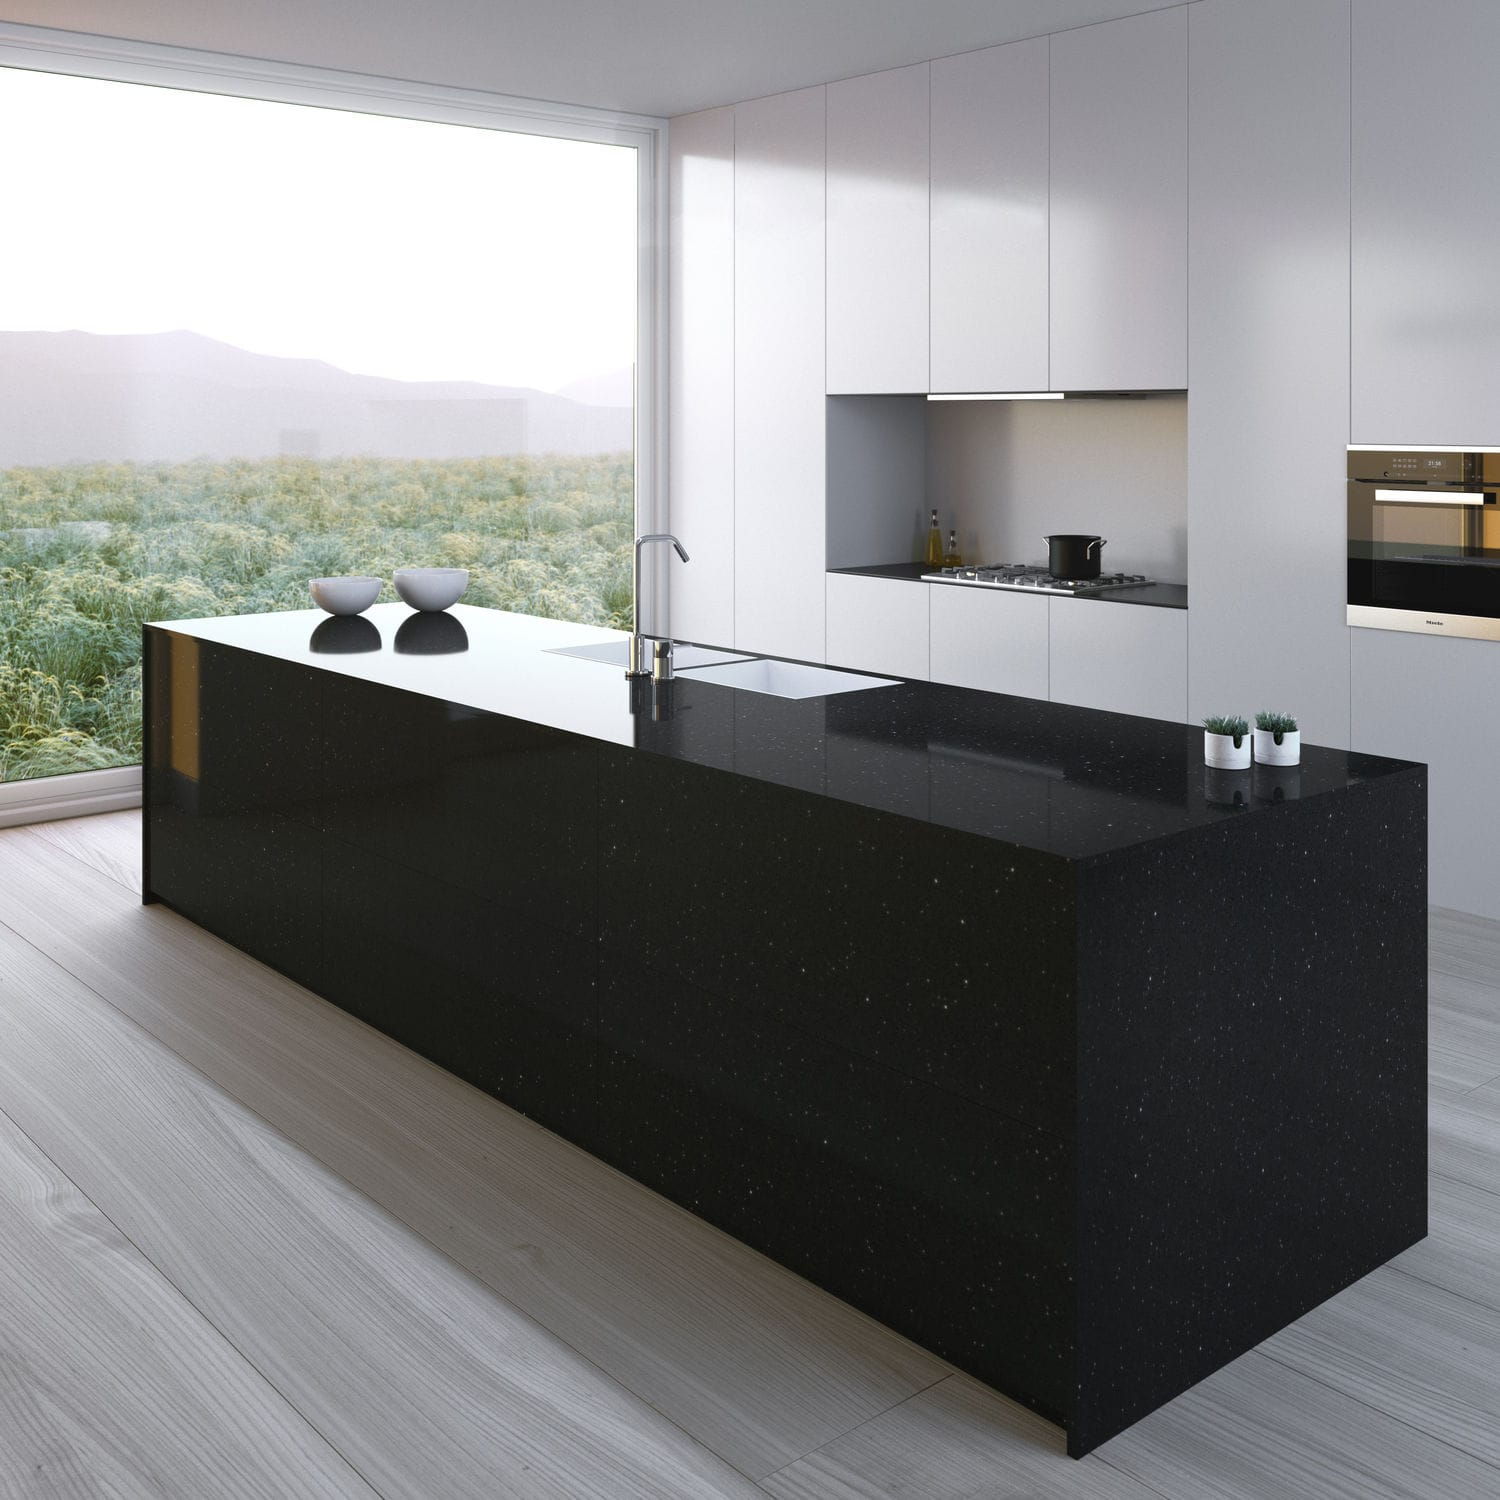 Silestone® Countertop / Kitchen / Black   NEGRO STELLAR